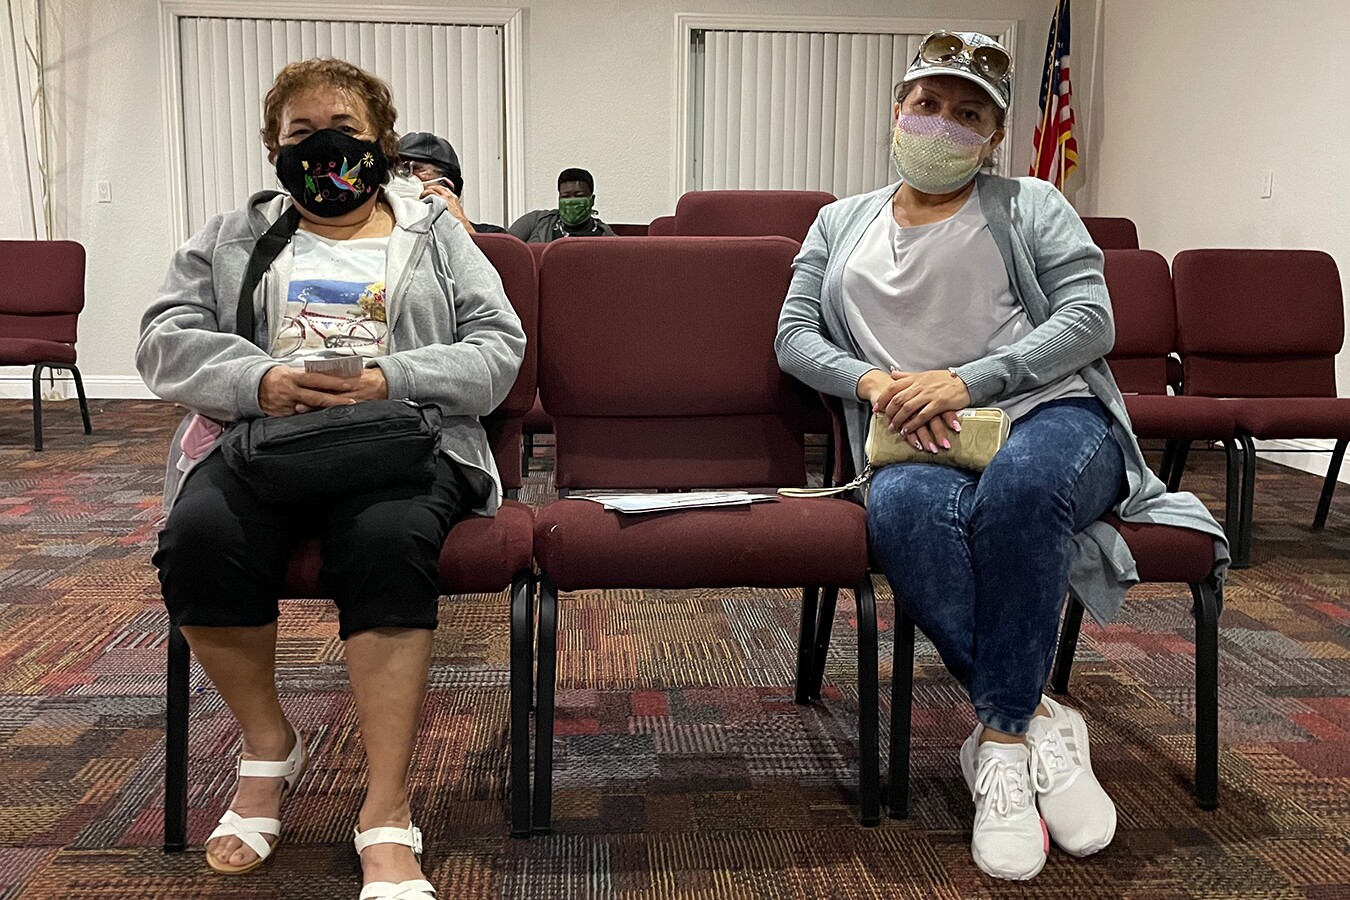 Two woman sit in waiting room chairs with an empty chair between the two of them. THey're both wearing masks and have their hands folded on their lap.